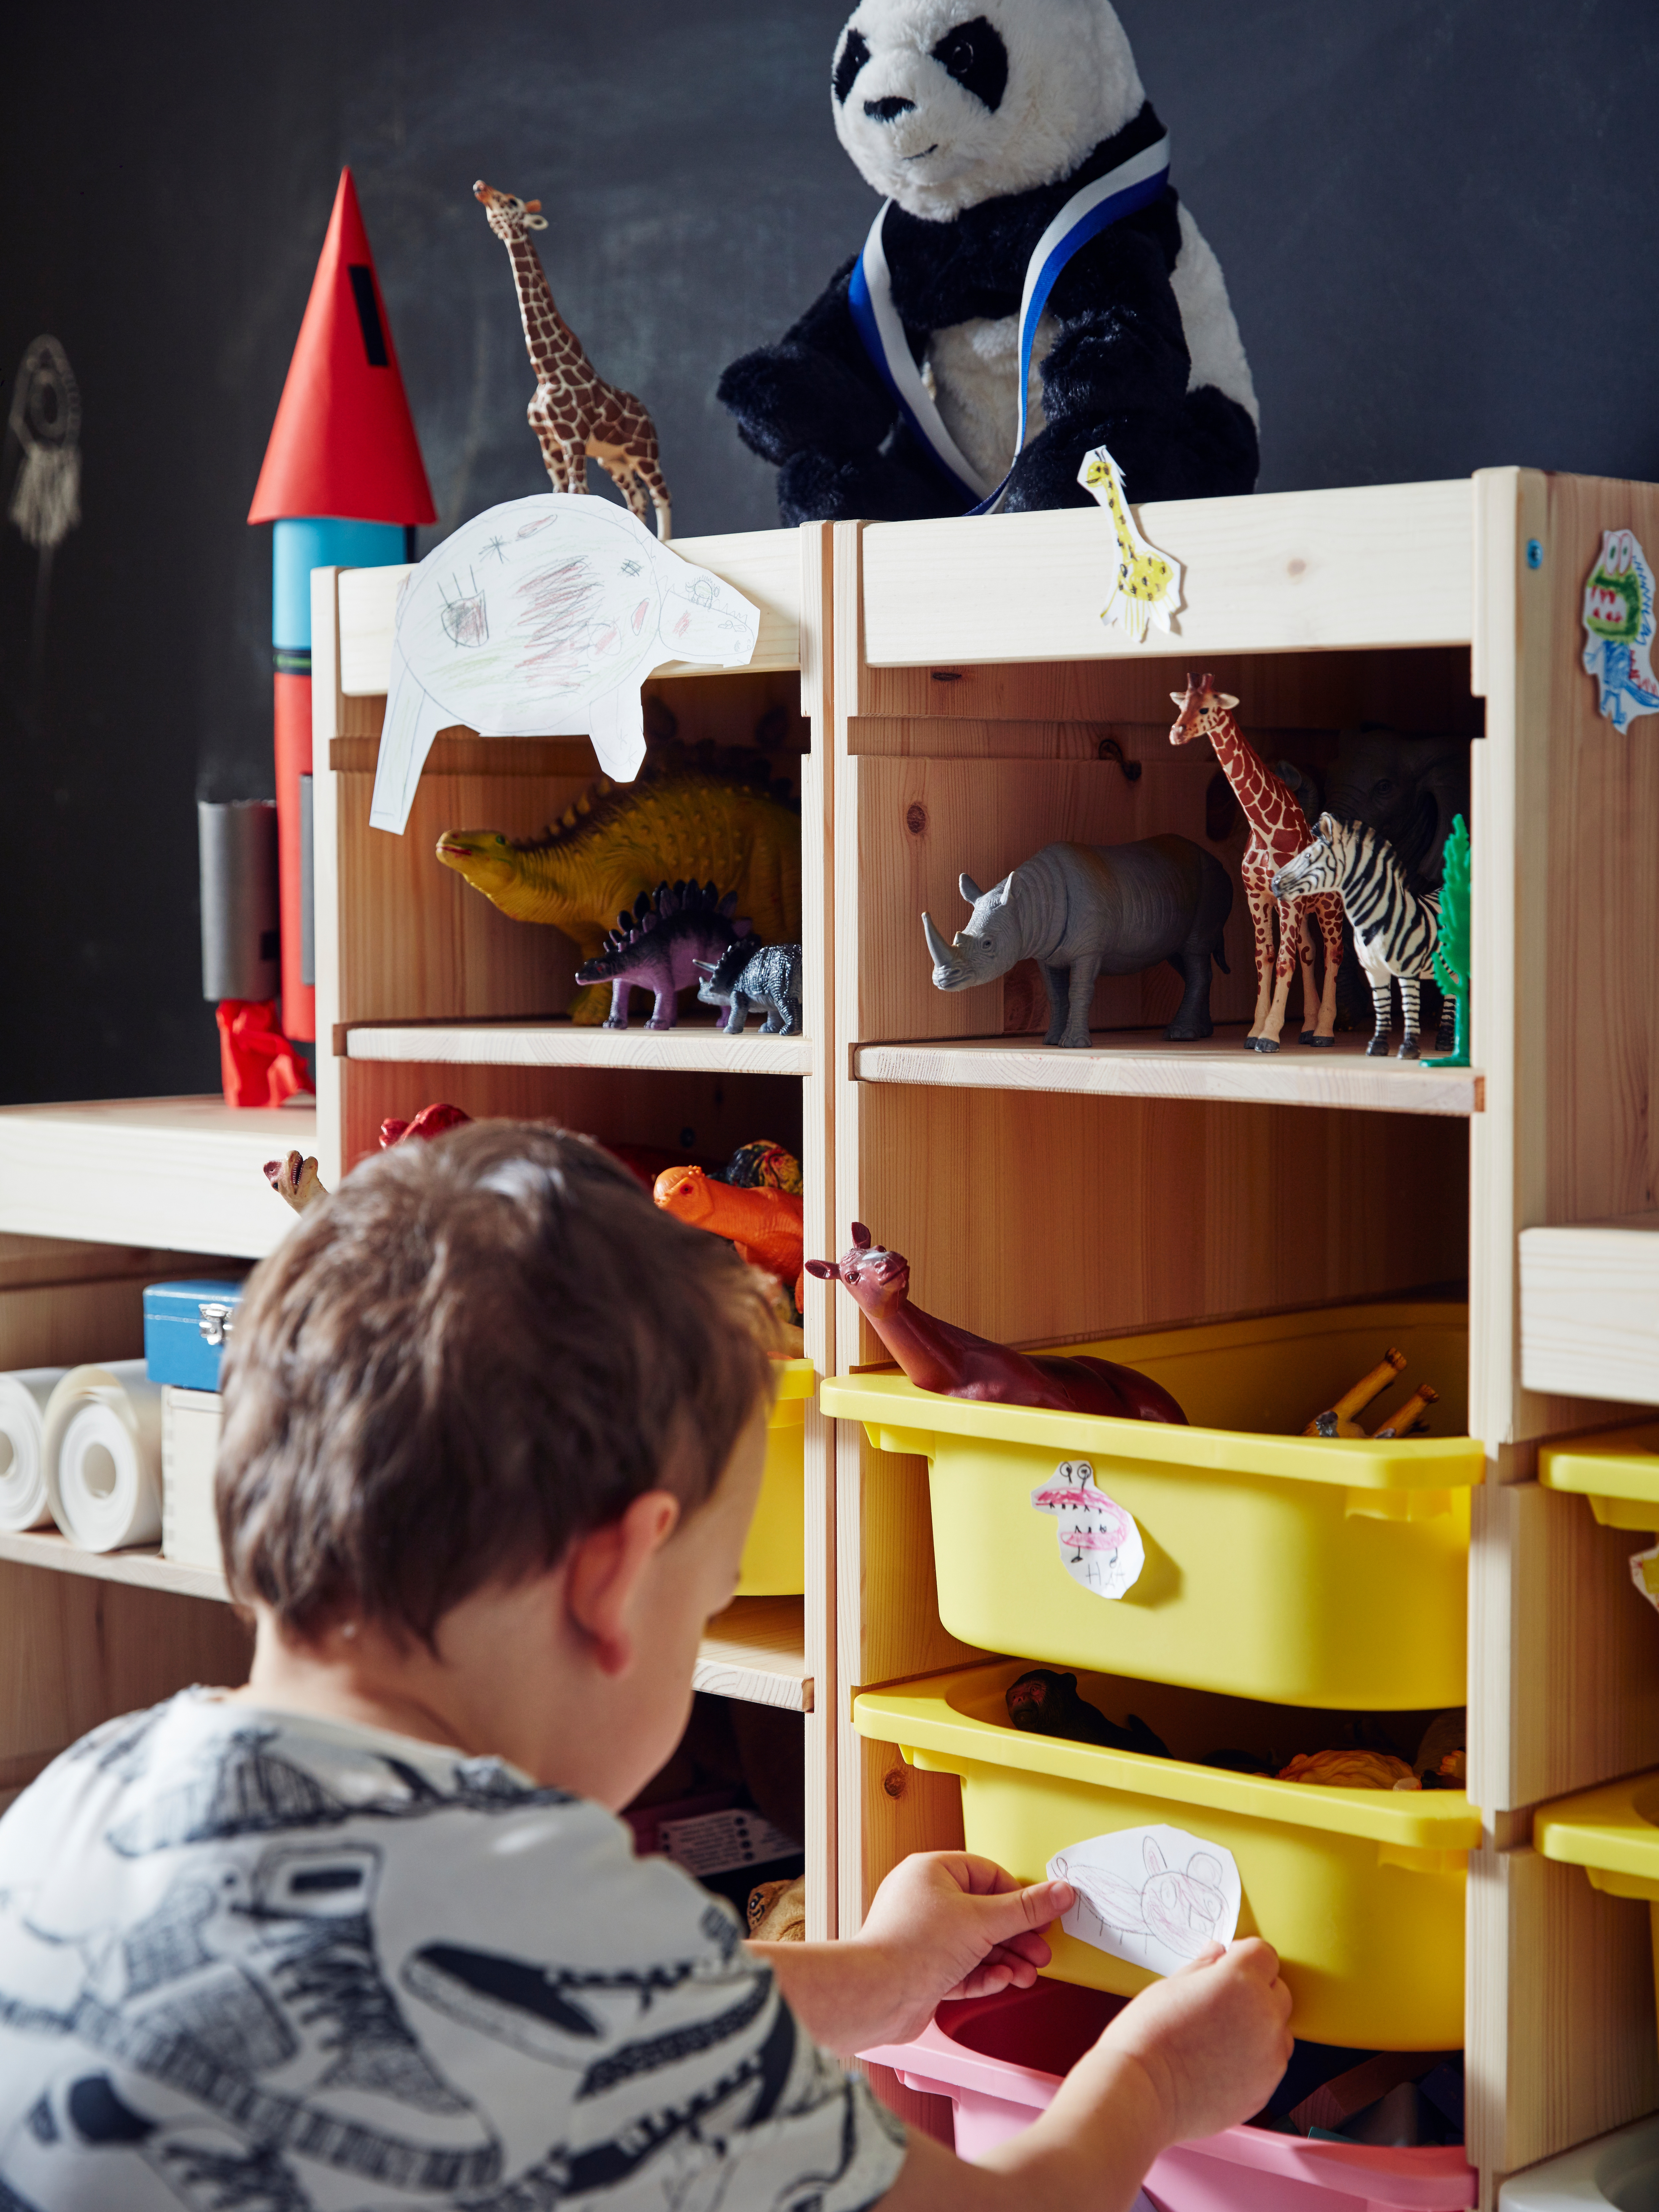 A TROFAST storage unit in white stained pine with pink and yellow boxes holding toys, with a child putting a label on a box.